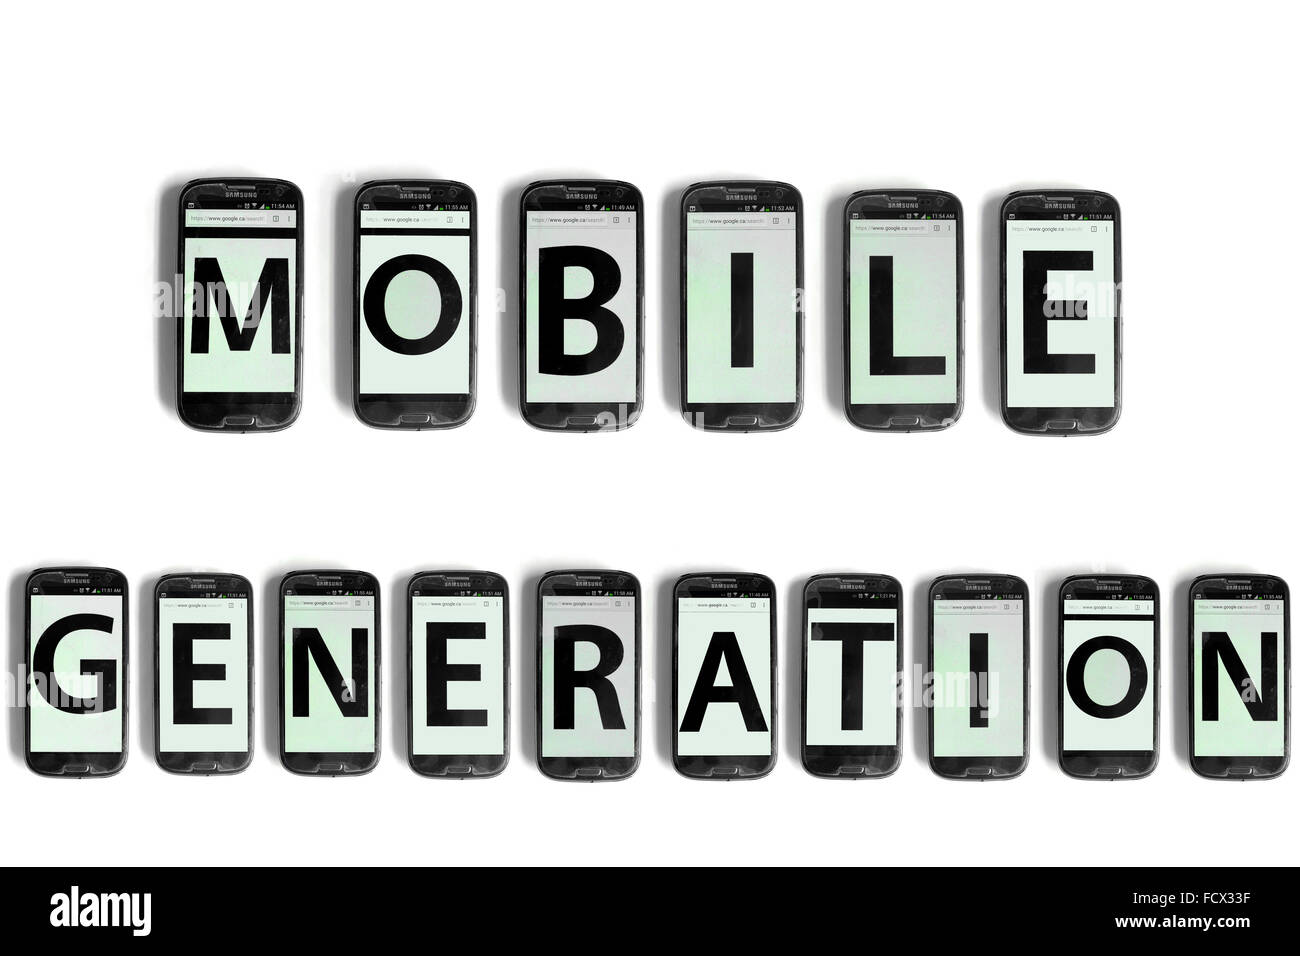 Mobile Generation written on the screen of smartphones photographed against a white background. - Stock Image